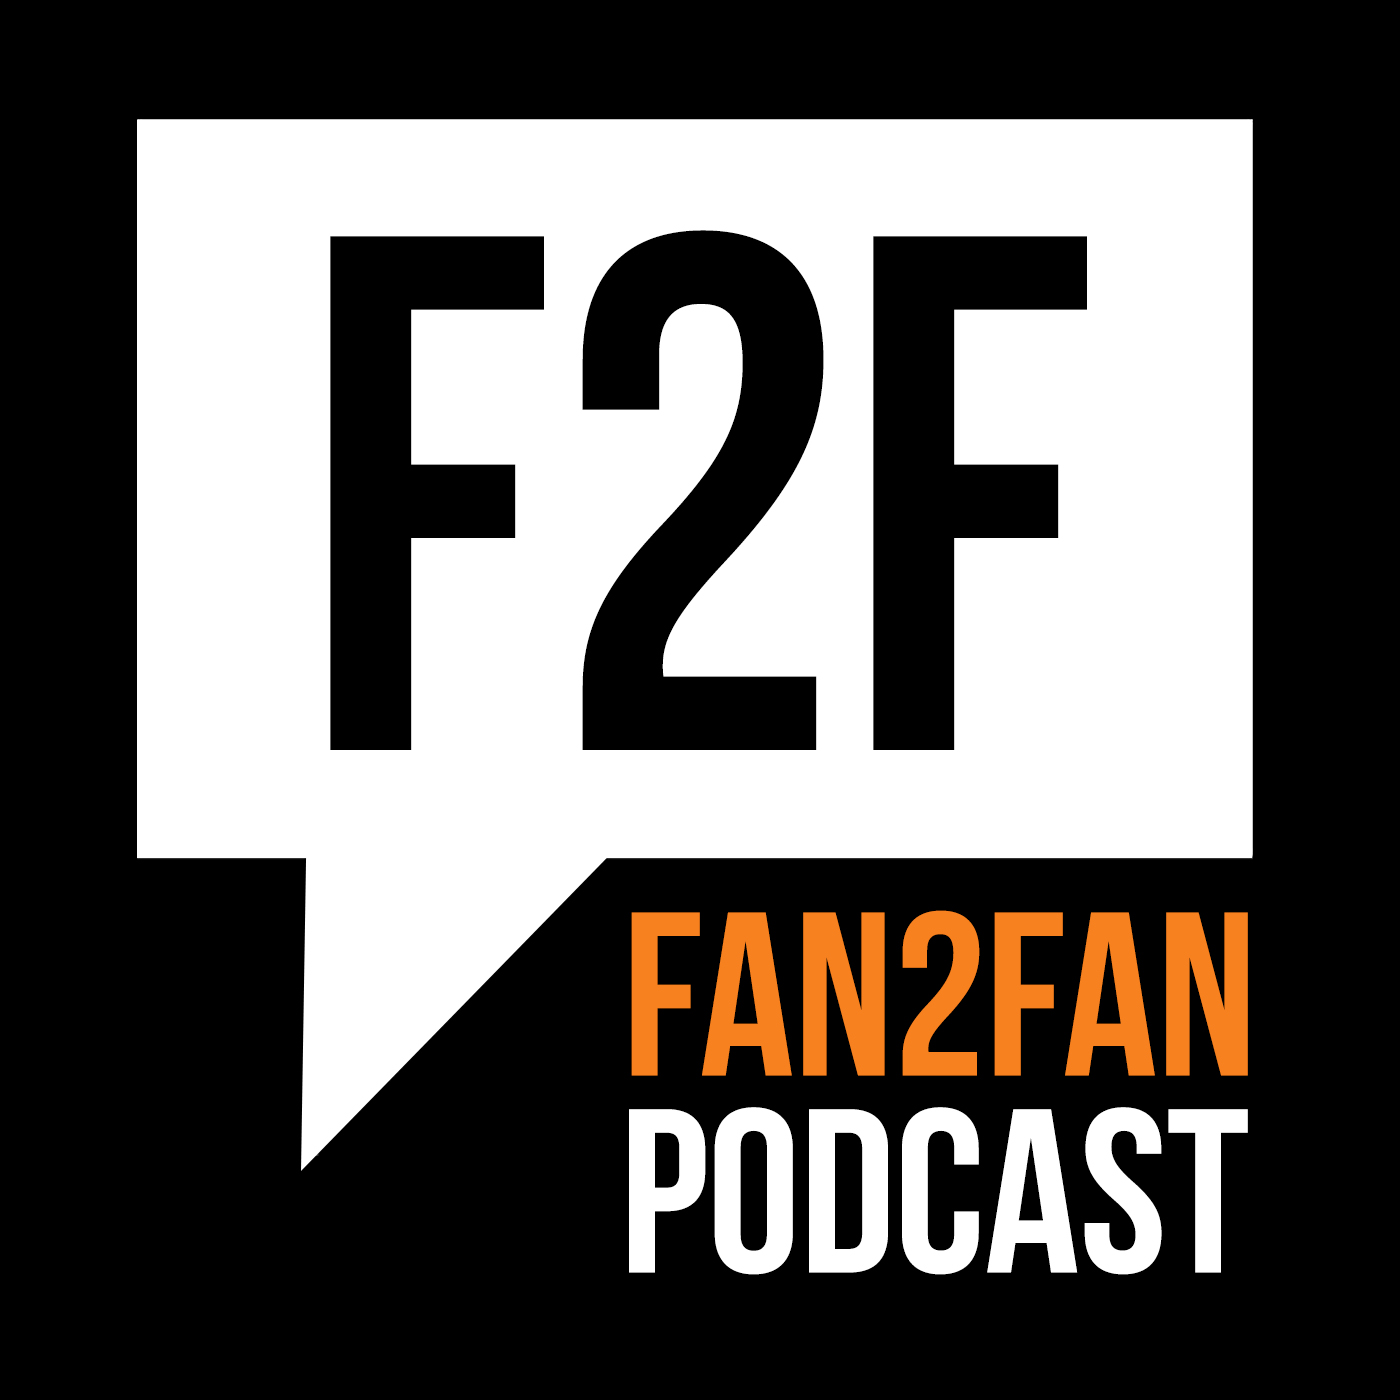 Fan2Fan Podcast - A Conversation Between Fans About Movies, Comics, TV, Video Games, Toys, Cartoons, And All Things Pop Culture show art